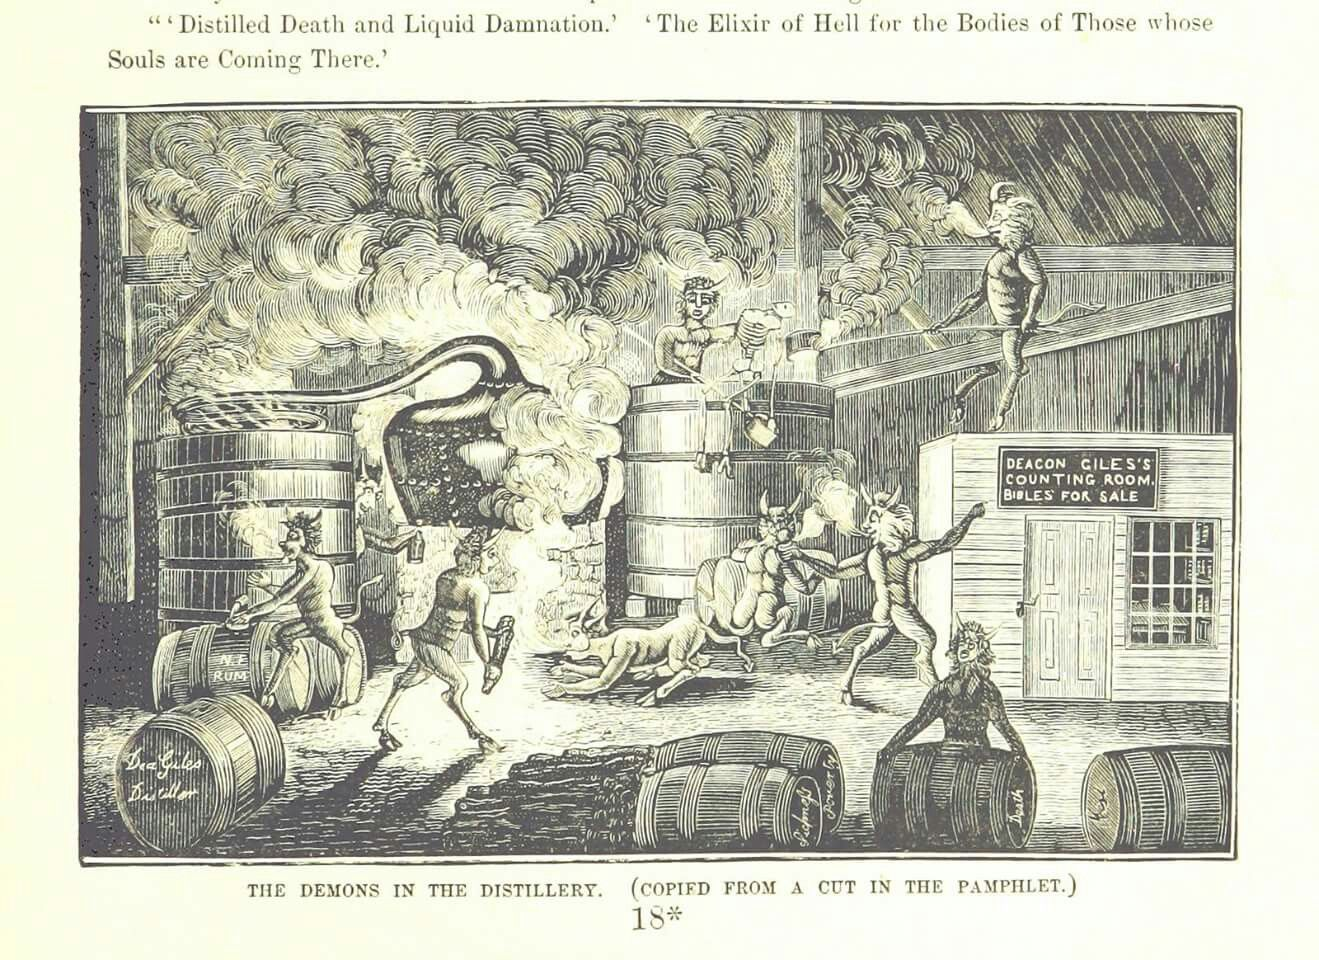 The truth about how whisky used to be made! (1883), courtesy The British Library.